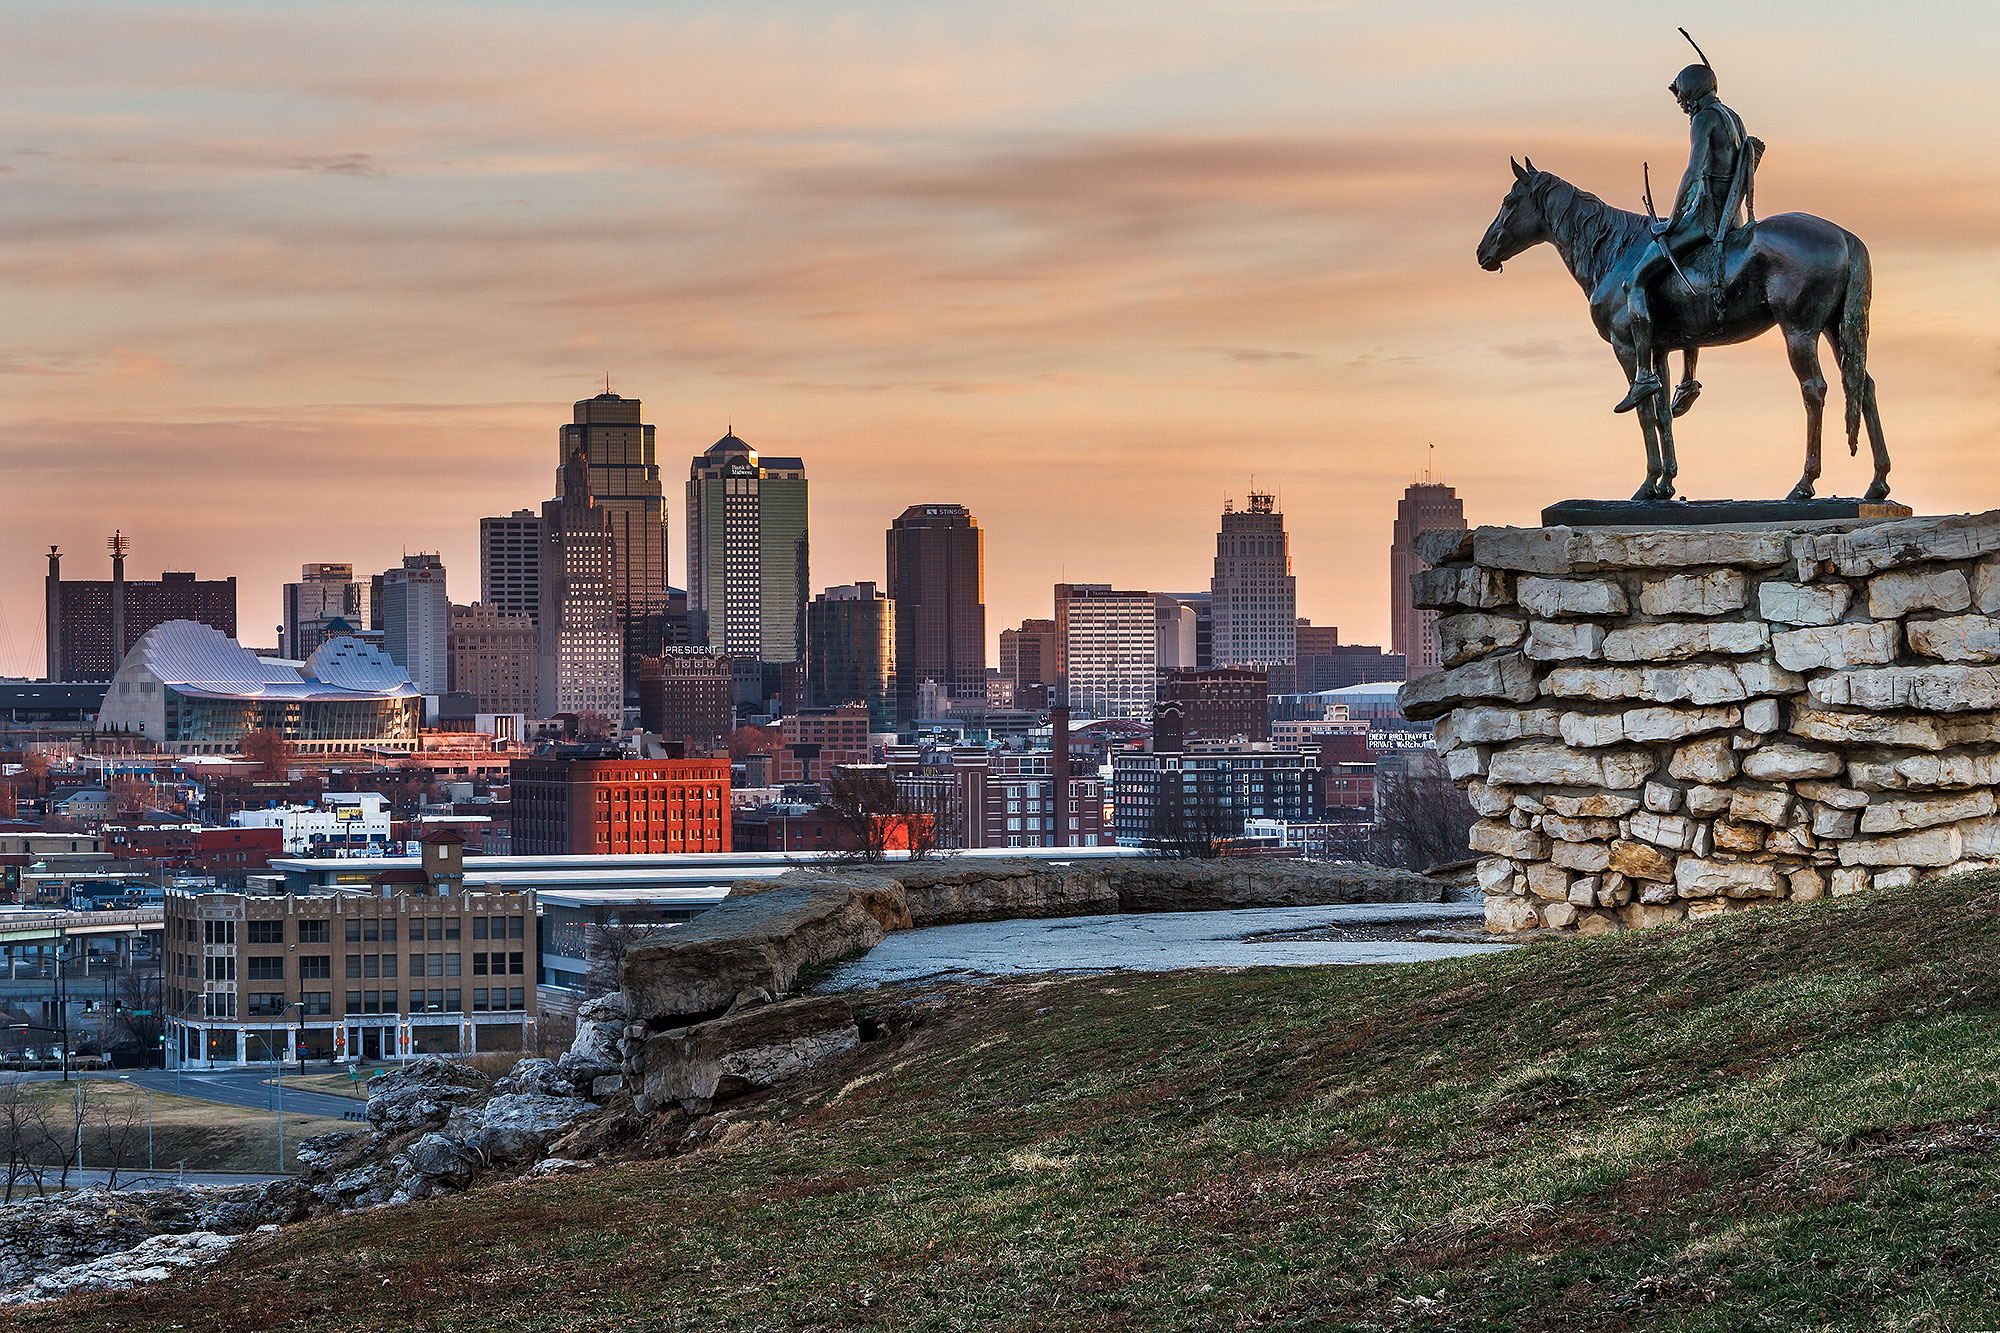 8. Kansas City, Missouri